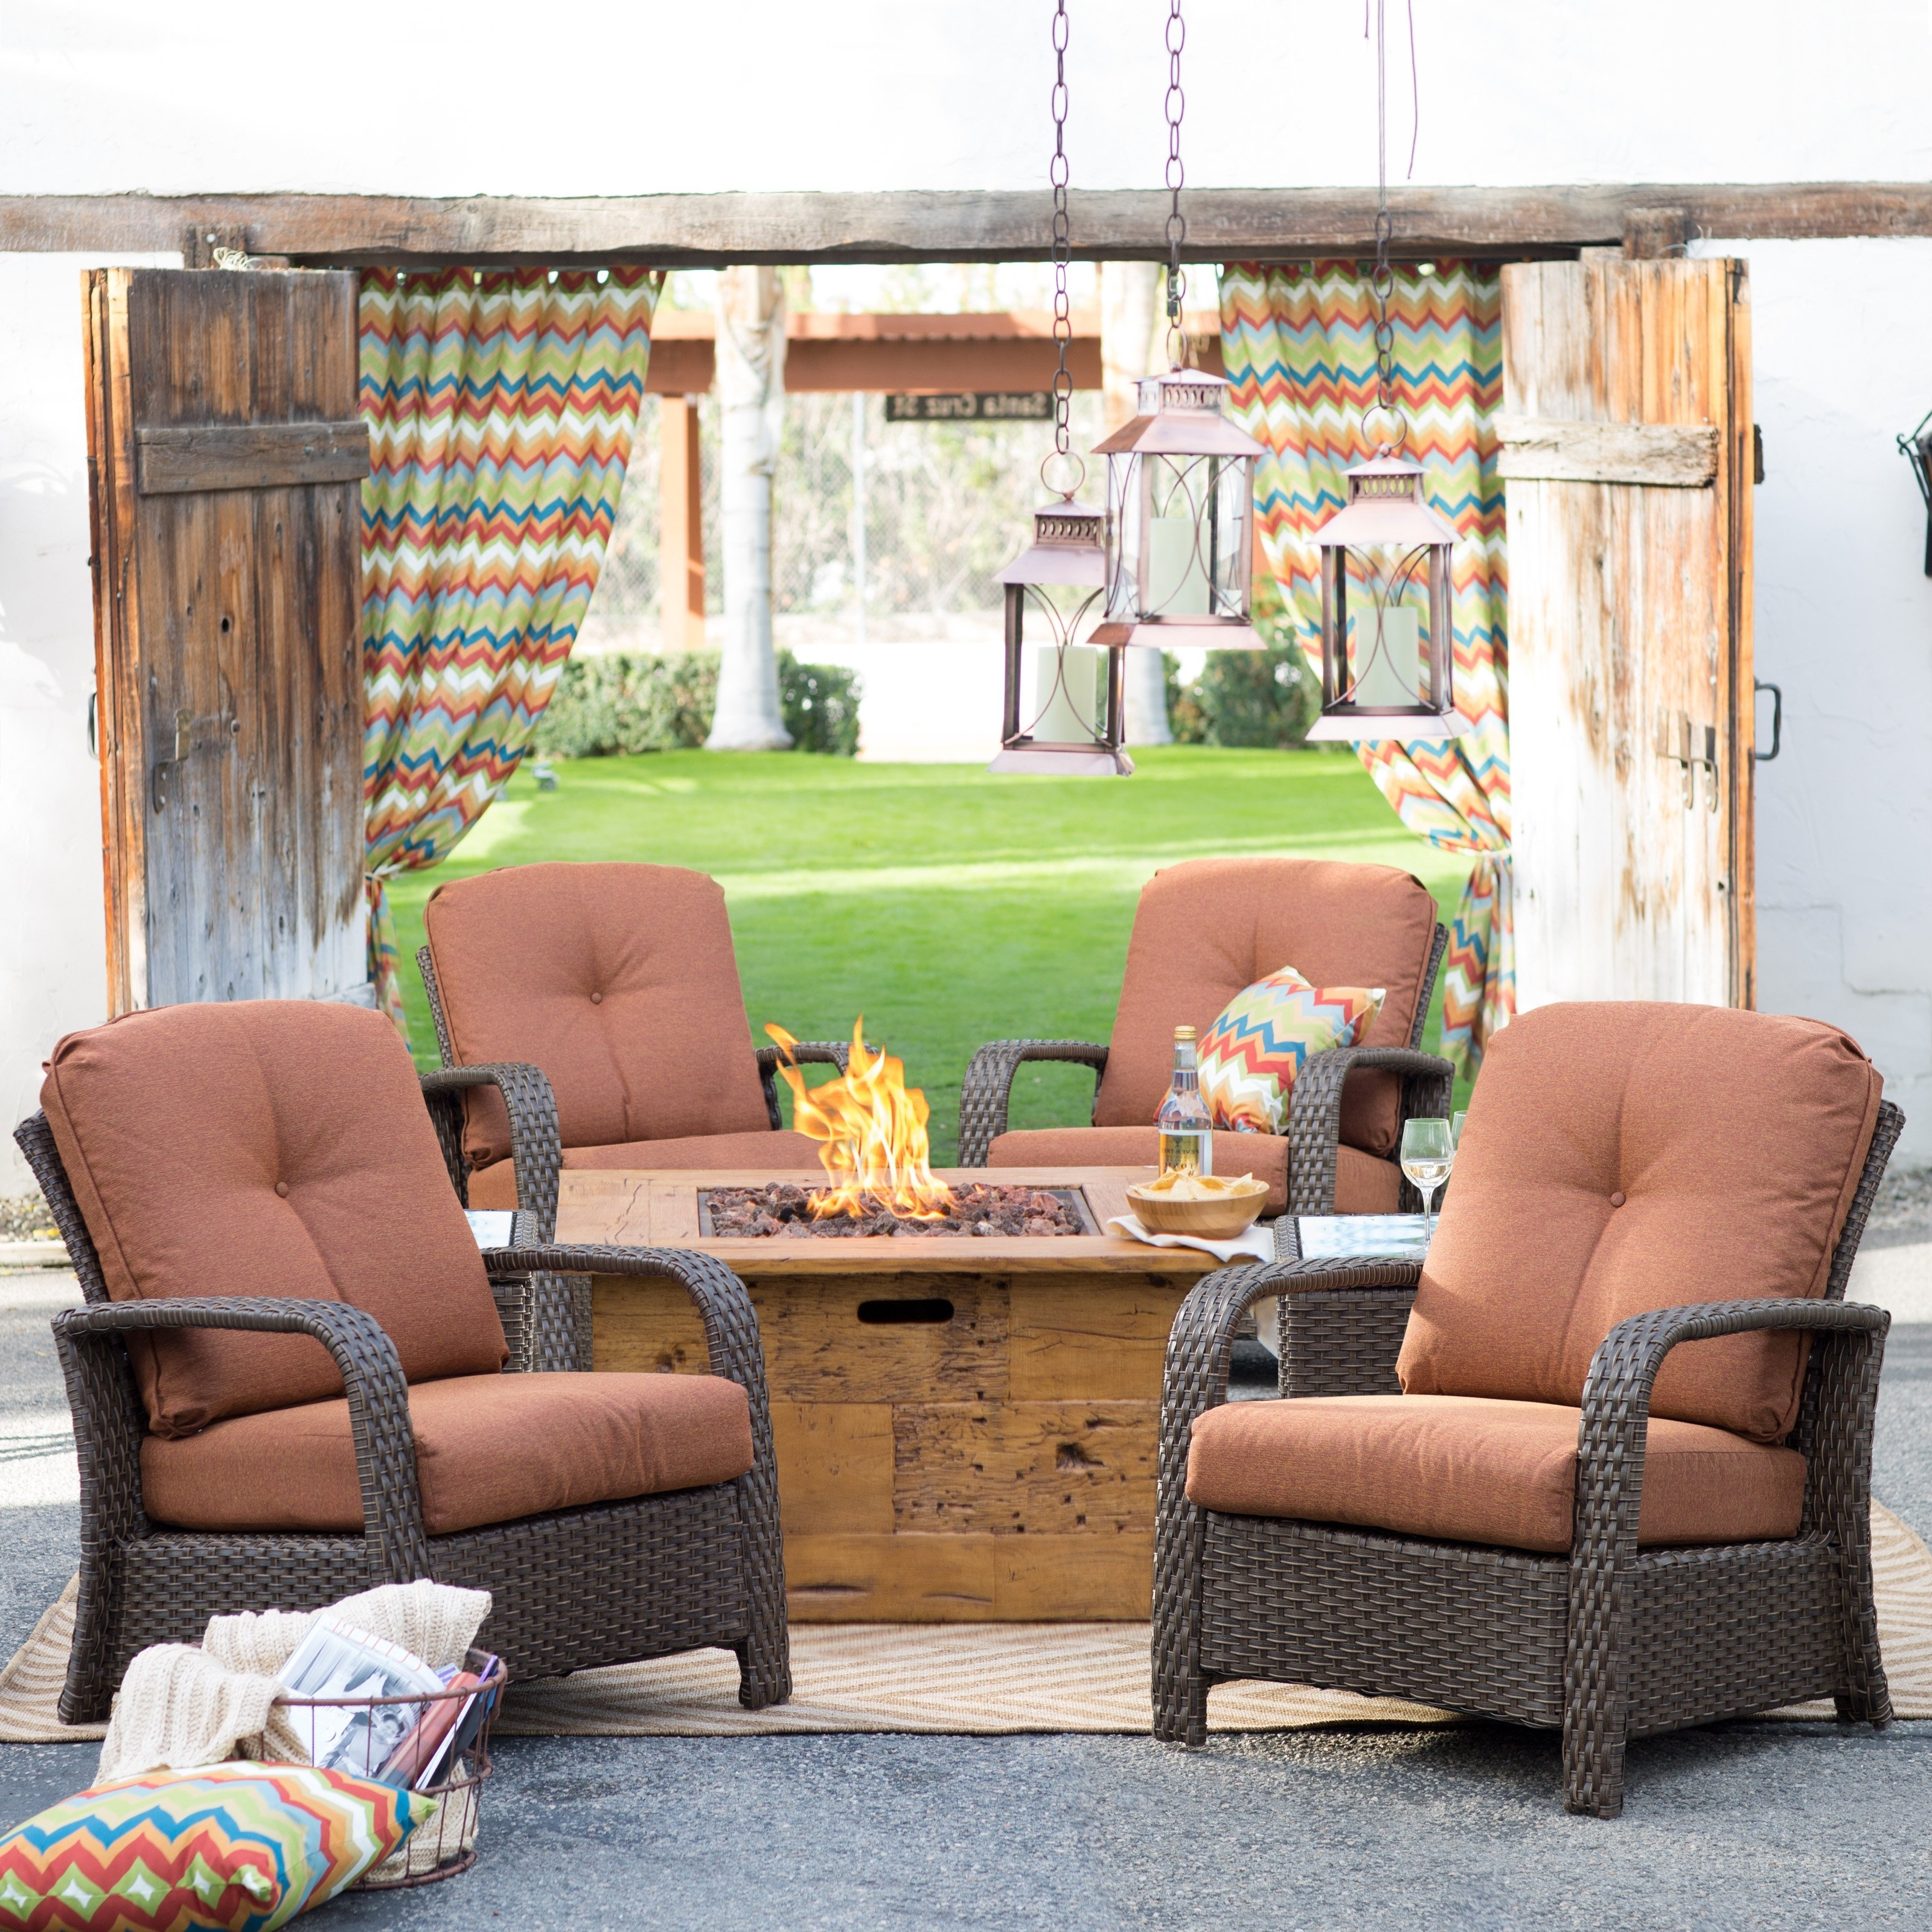 Belham Living Ariana All Weather Wicker Chat Set With Julesburg Fire Pertaining To 2018 Hayneedle Patio Conversation Sets (View 1 of 20)